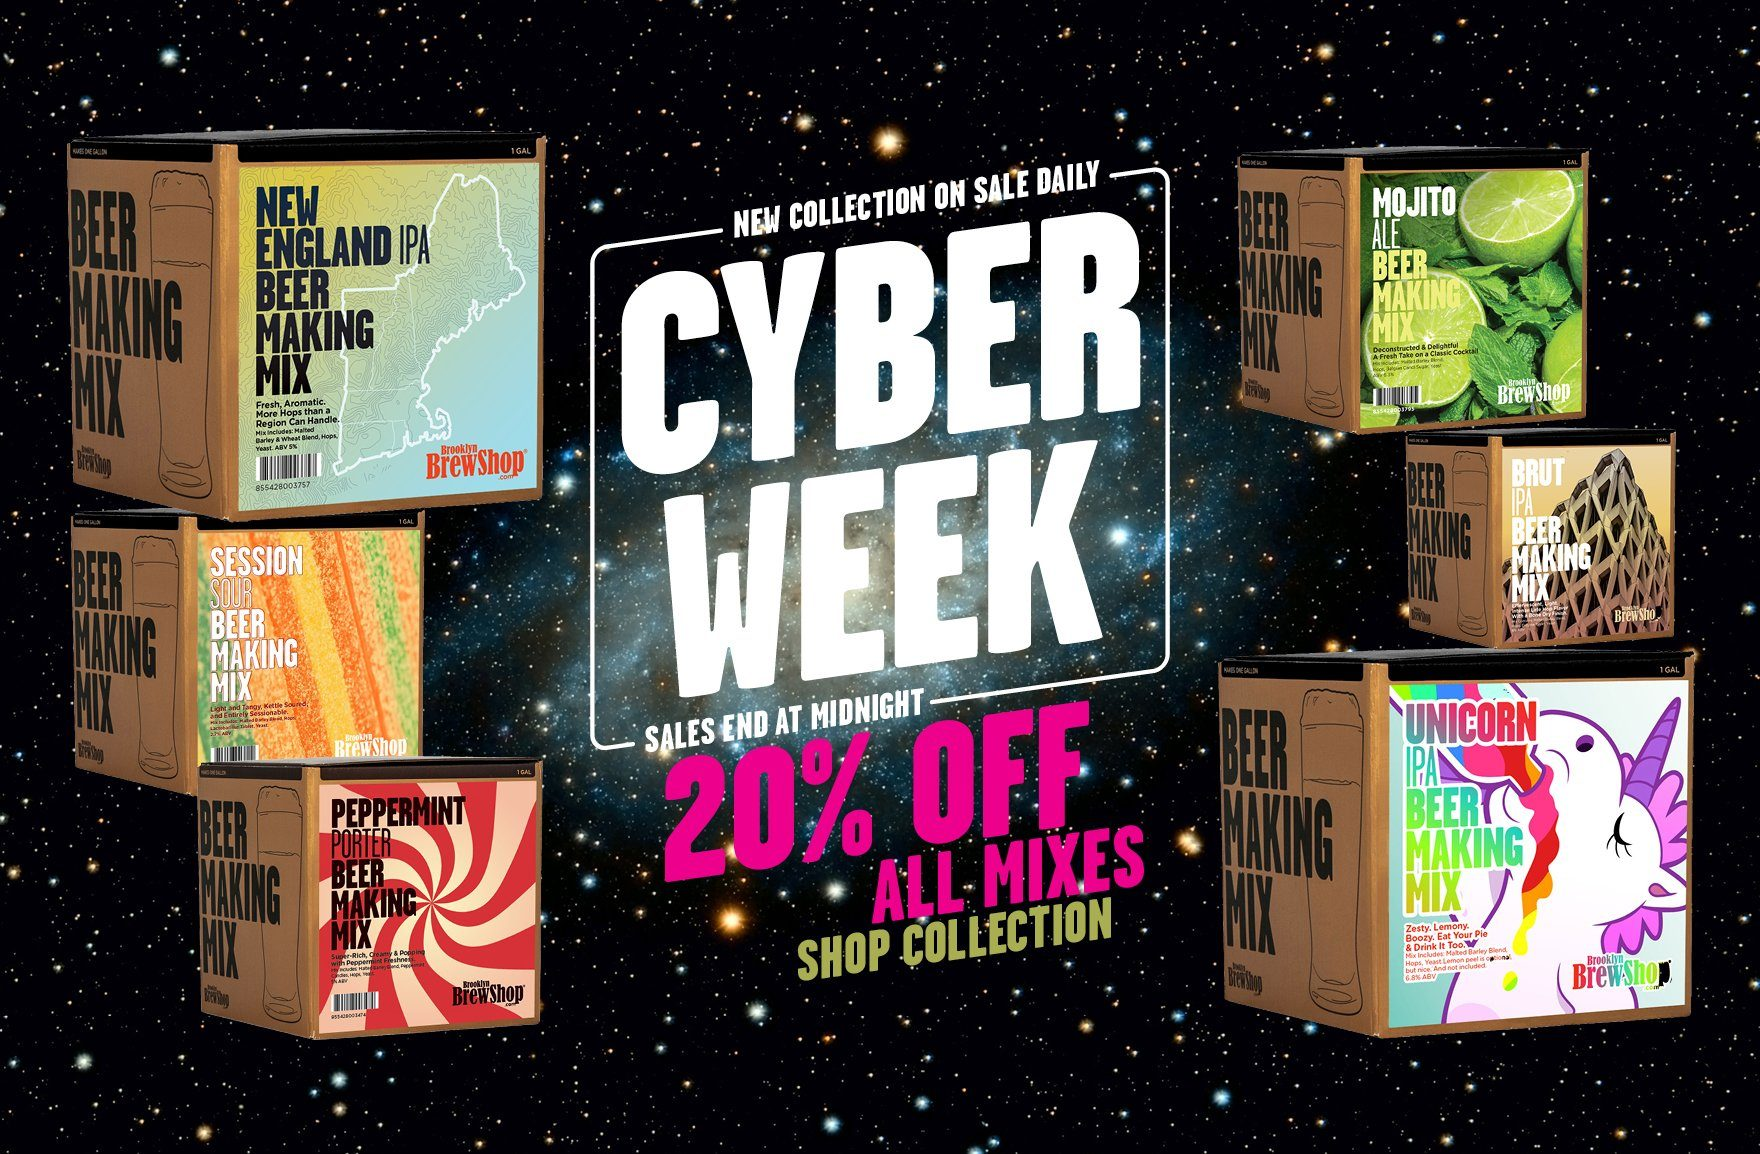 Cyber Week Sale 2019: 20% Off All Beer Making Mixes